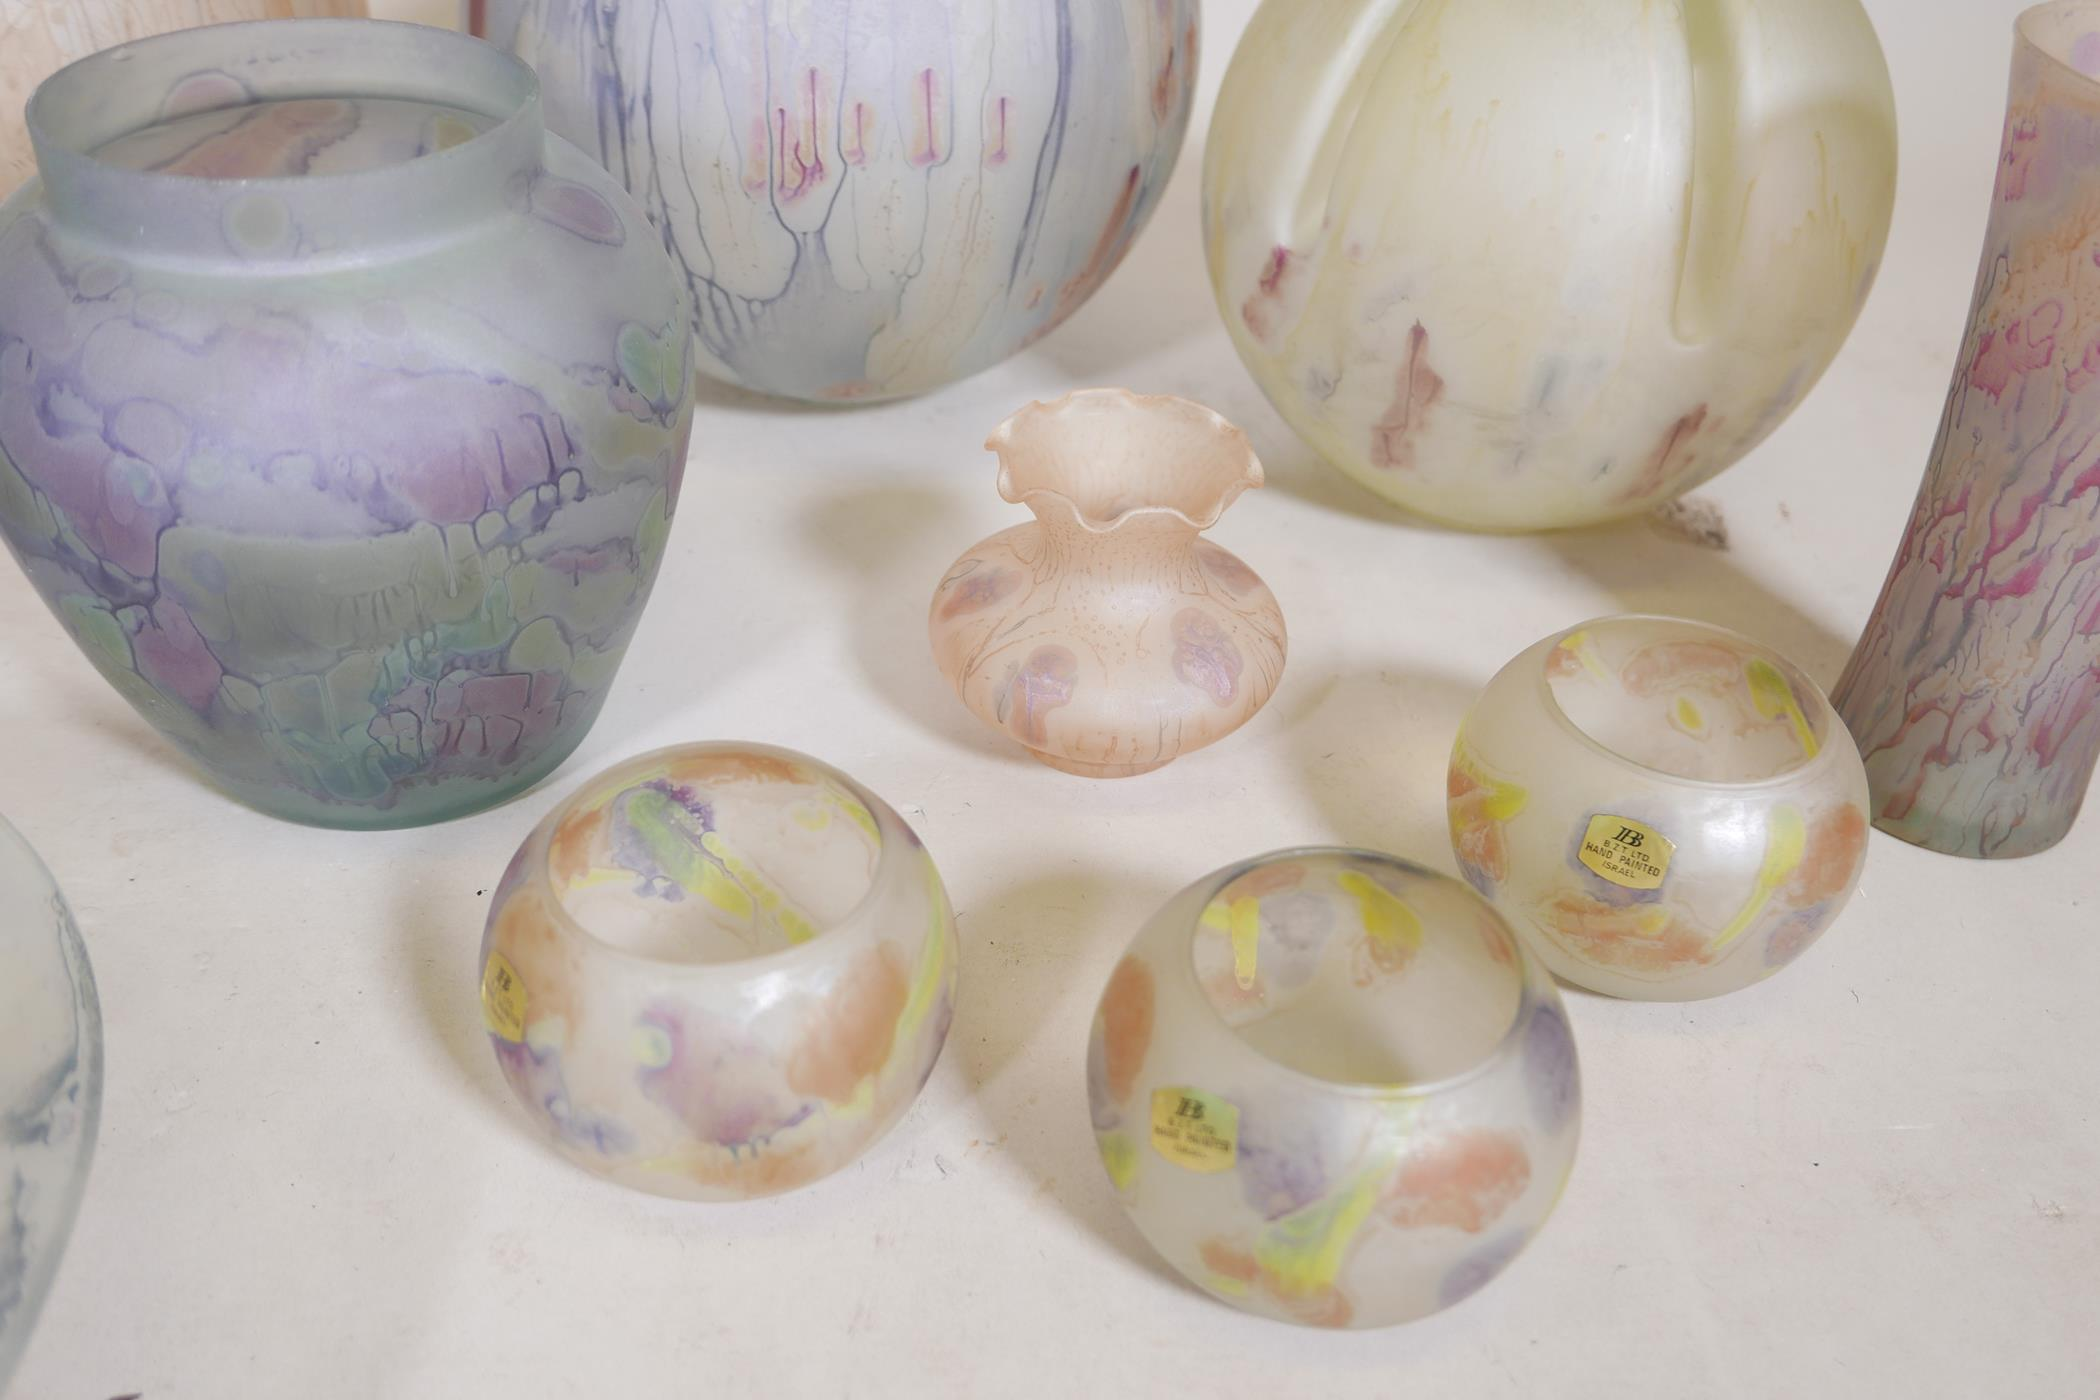 A quantity of Israeli hand painted studio glass to include lamp shades, vases, bowls and dishes, - Image 5 of 8